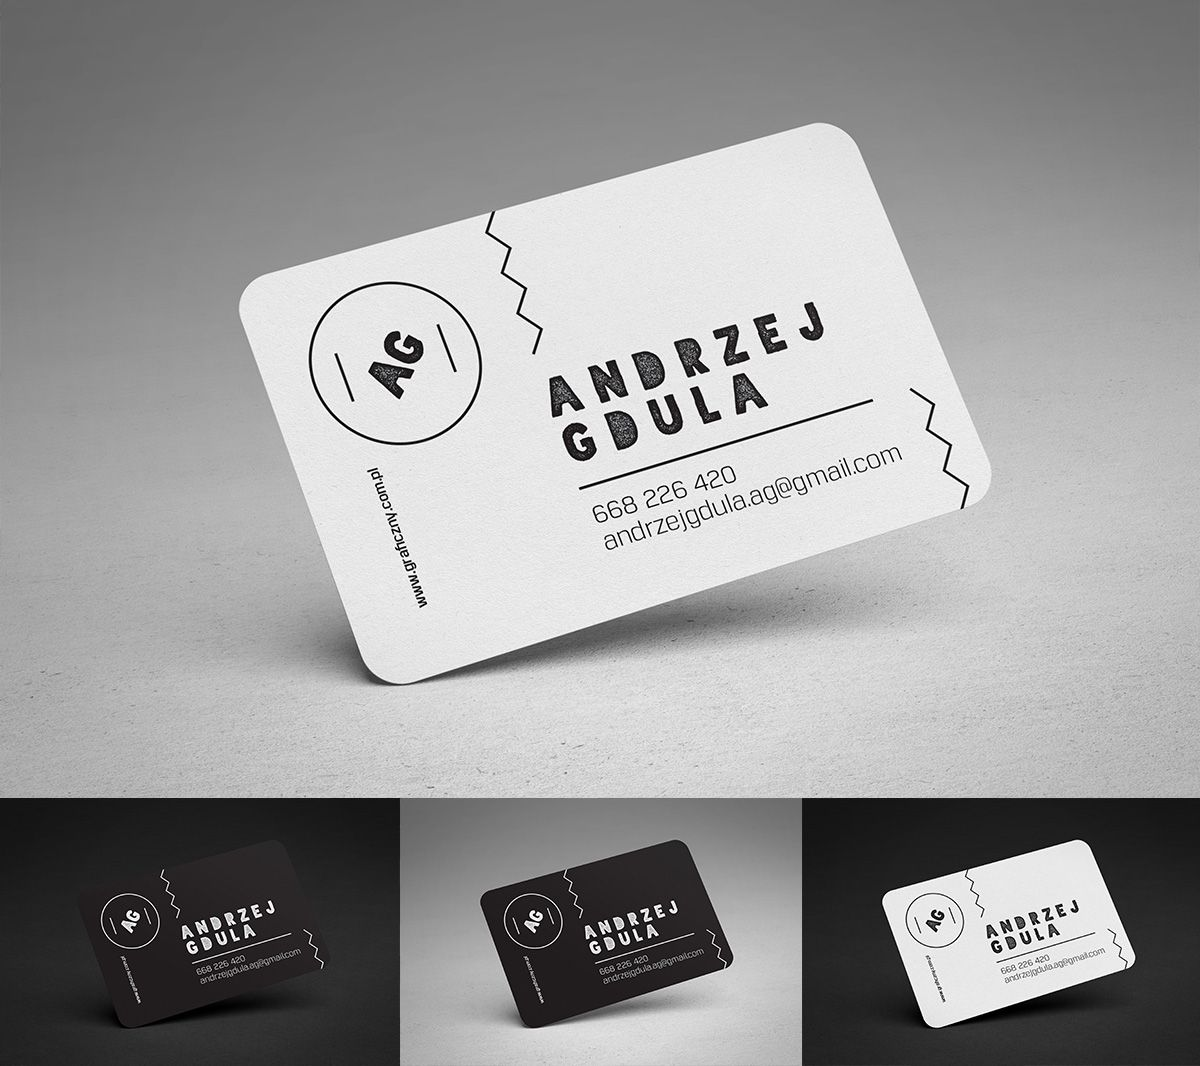 Rounded corner business card mockup #free #psd #photoshop | Mock ...